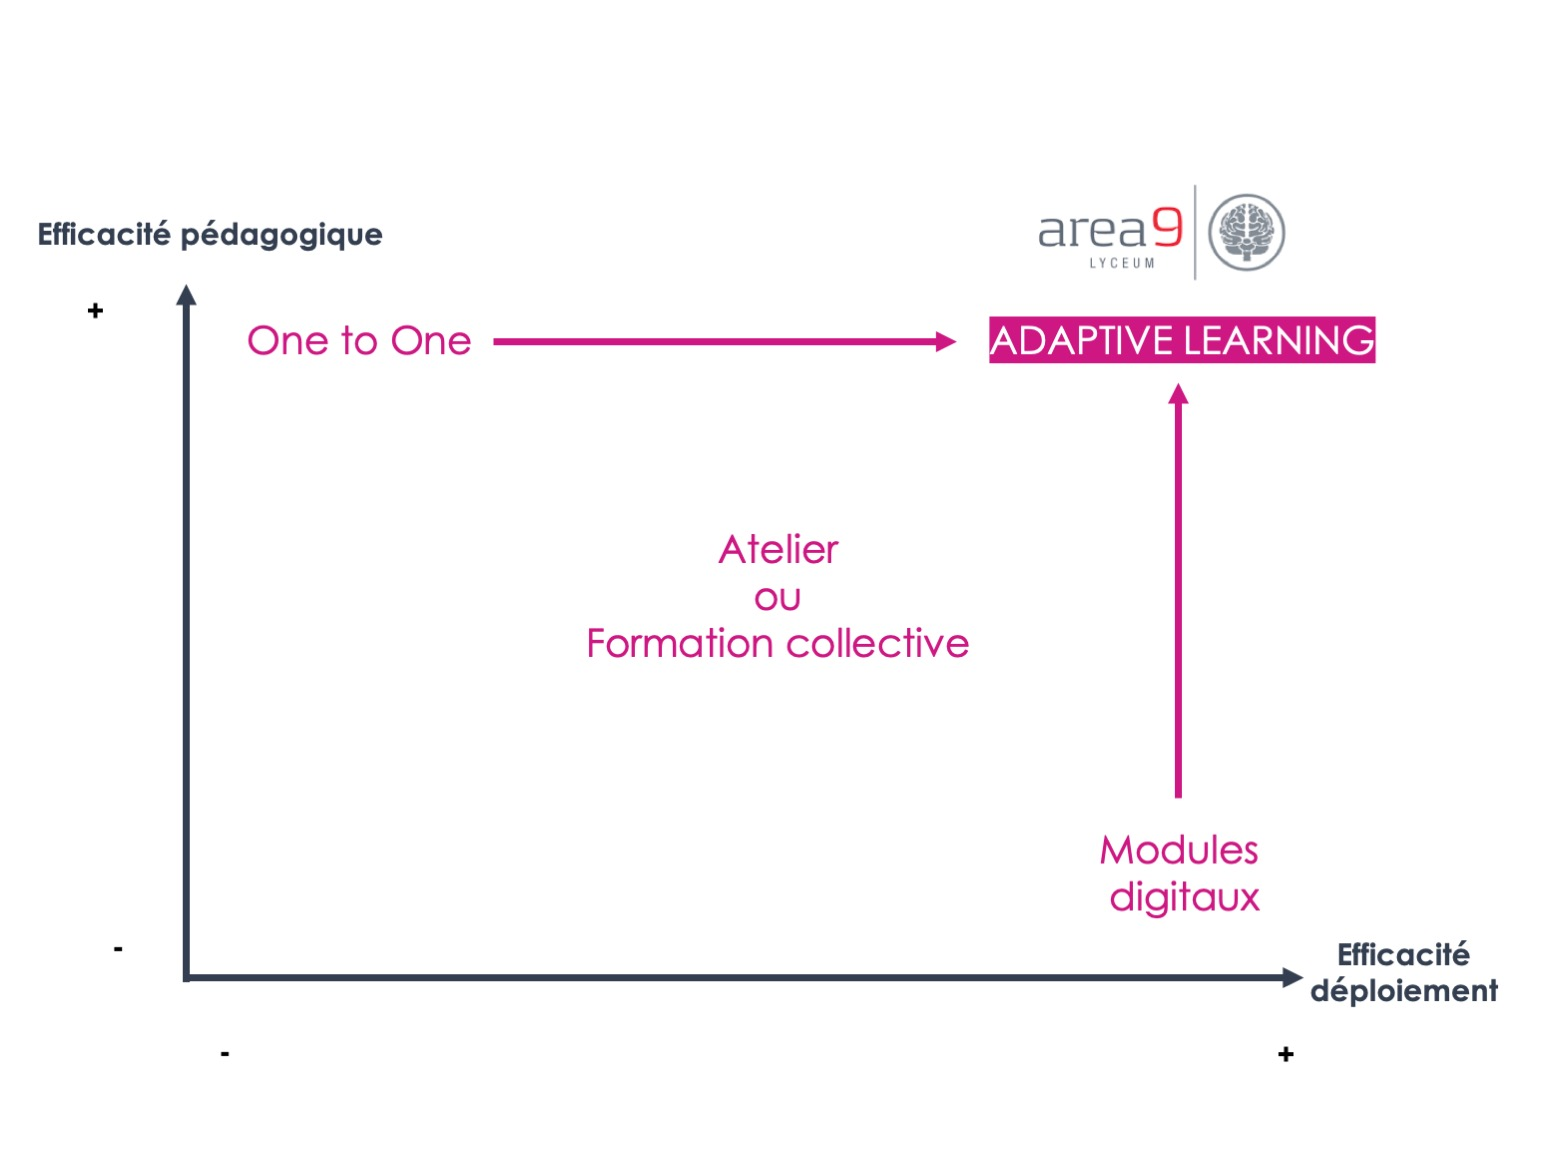 Adaptive Learning by Area9